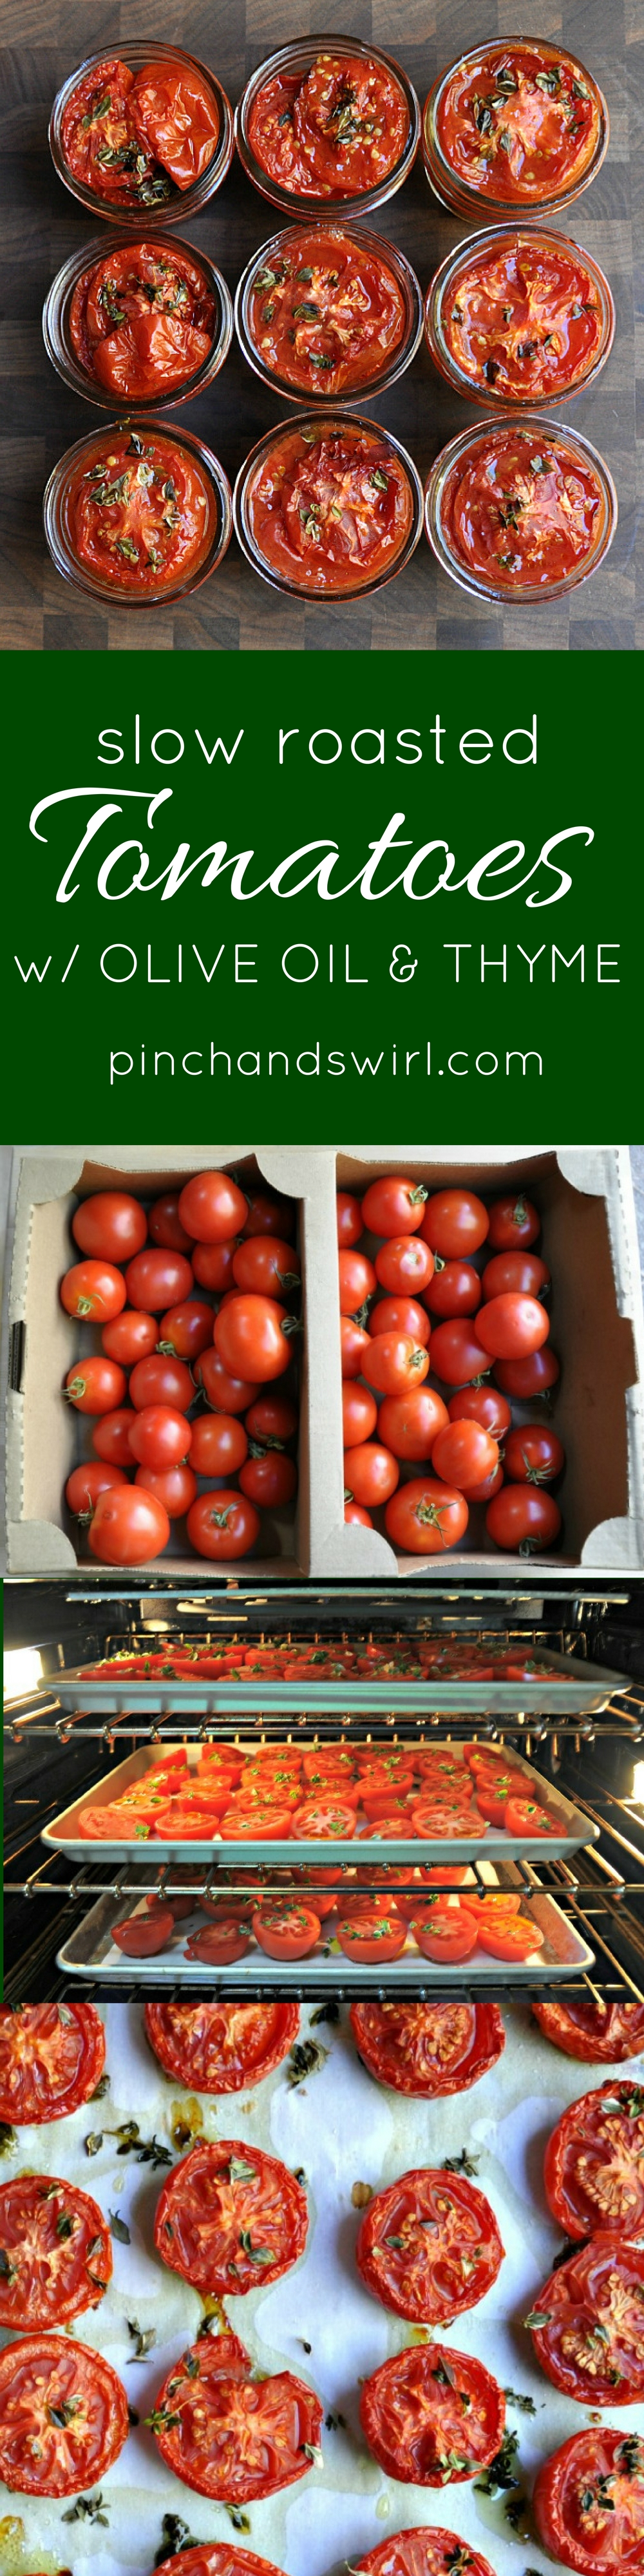 Slow Roasted Tomatoes with Olive Oil and Thyme - the lazy way (no canning!) to enjoy peak summer tomatoes all winter long! #easyrecipes #healthyrecipes #summerrecipes